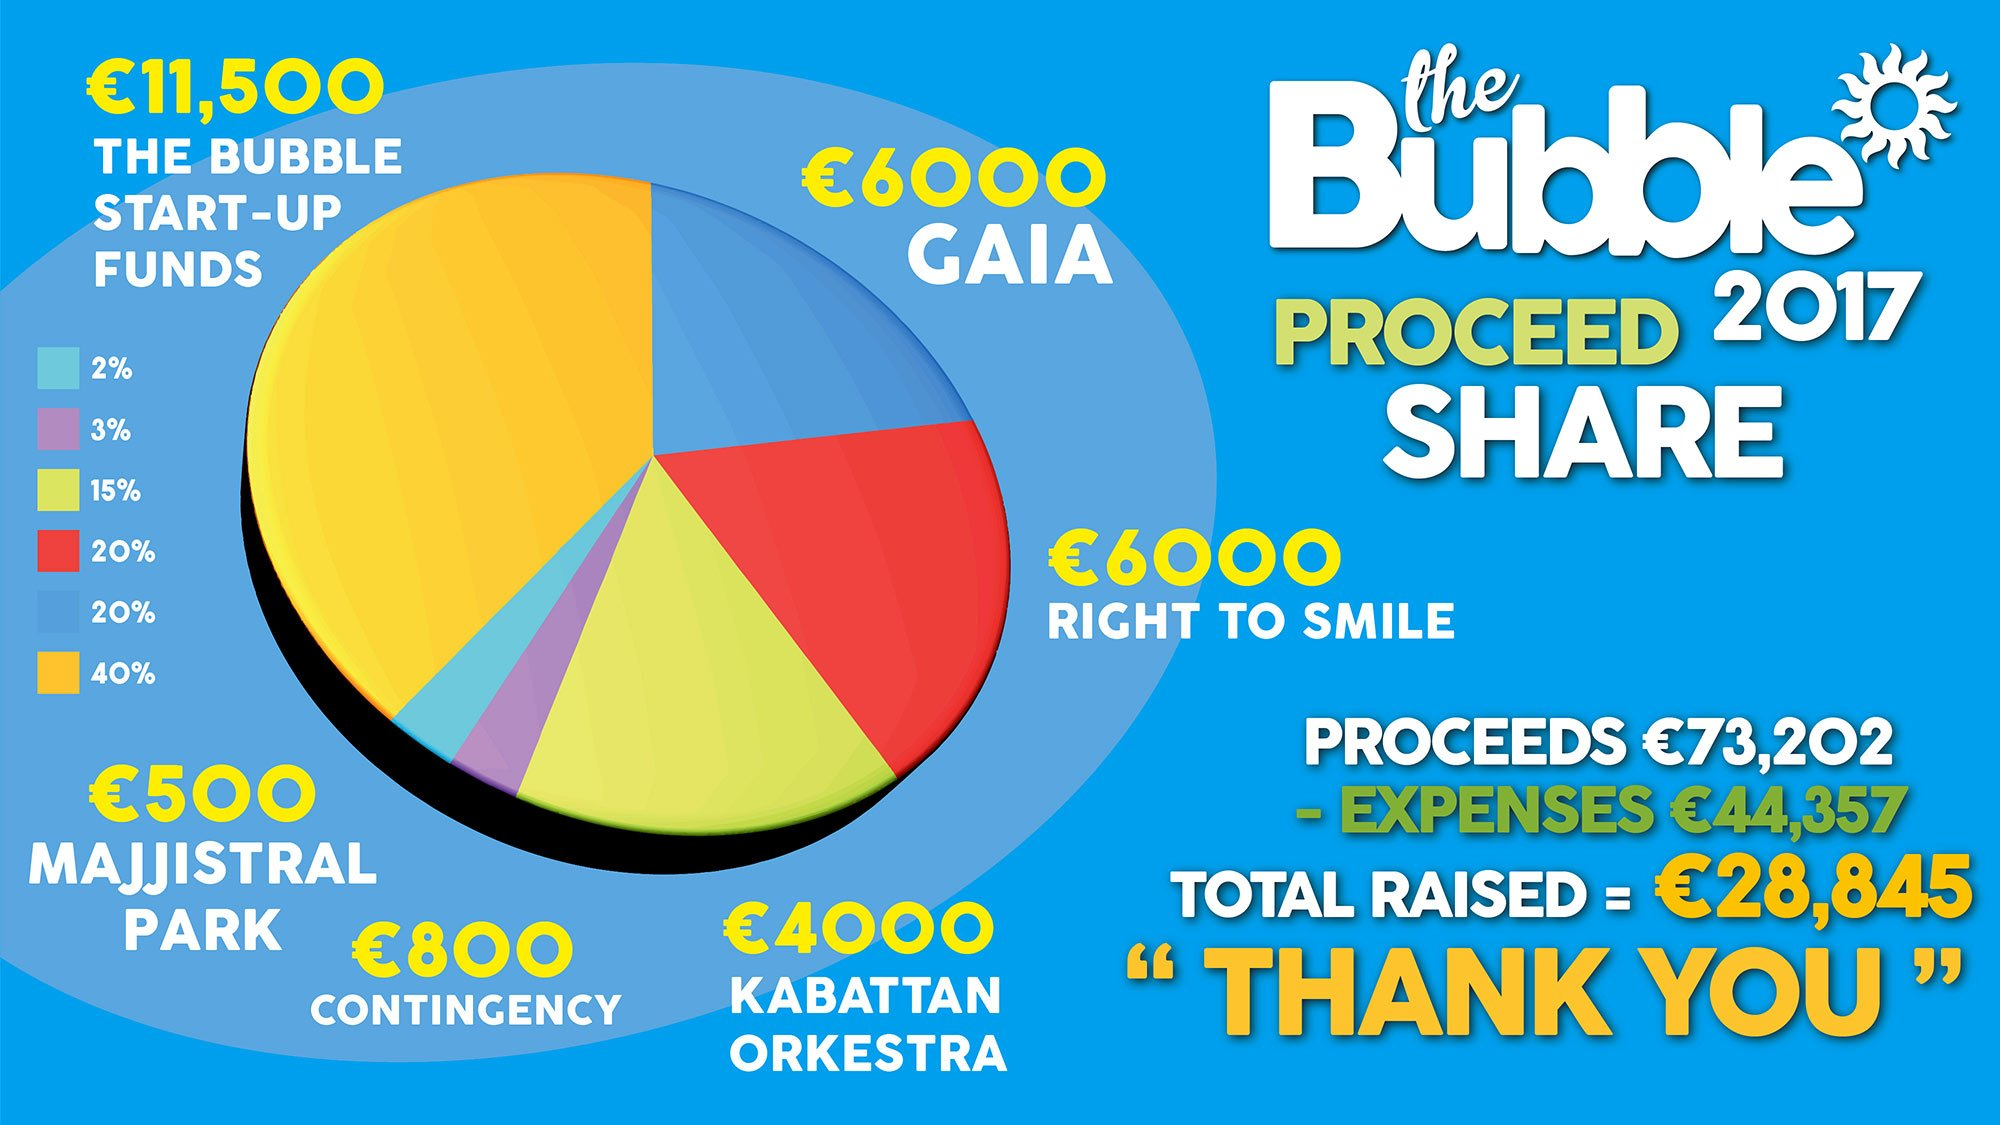 Tickets the bubble take a look at how the bubble 2017 proceeds were shared altavistaventures Images